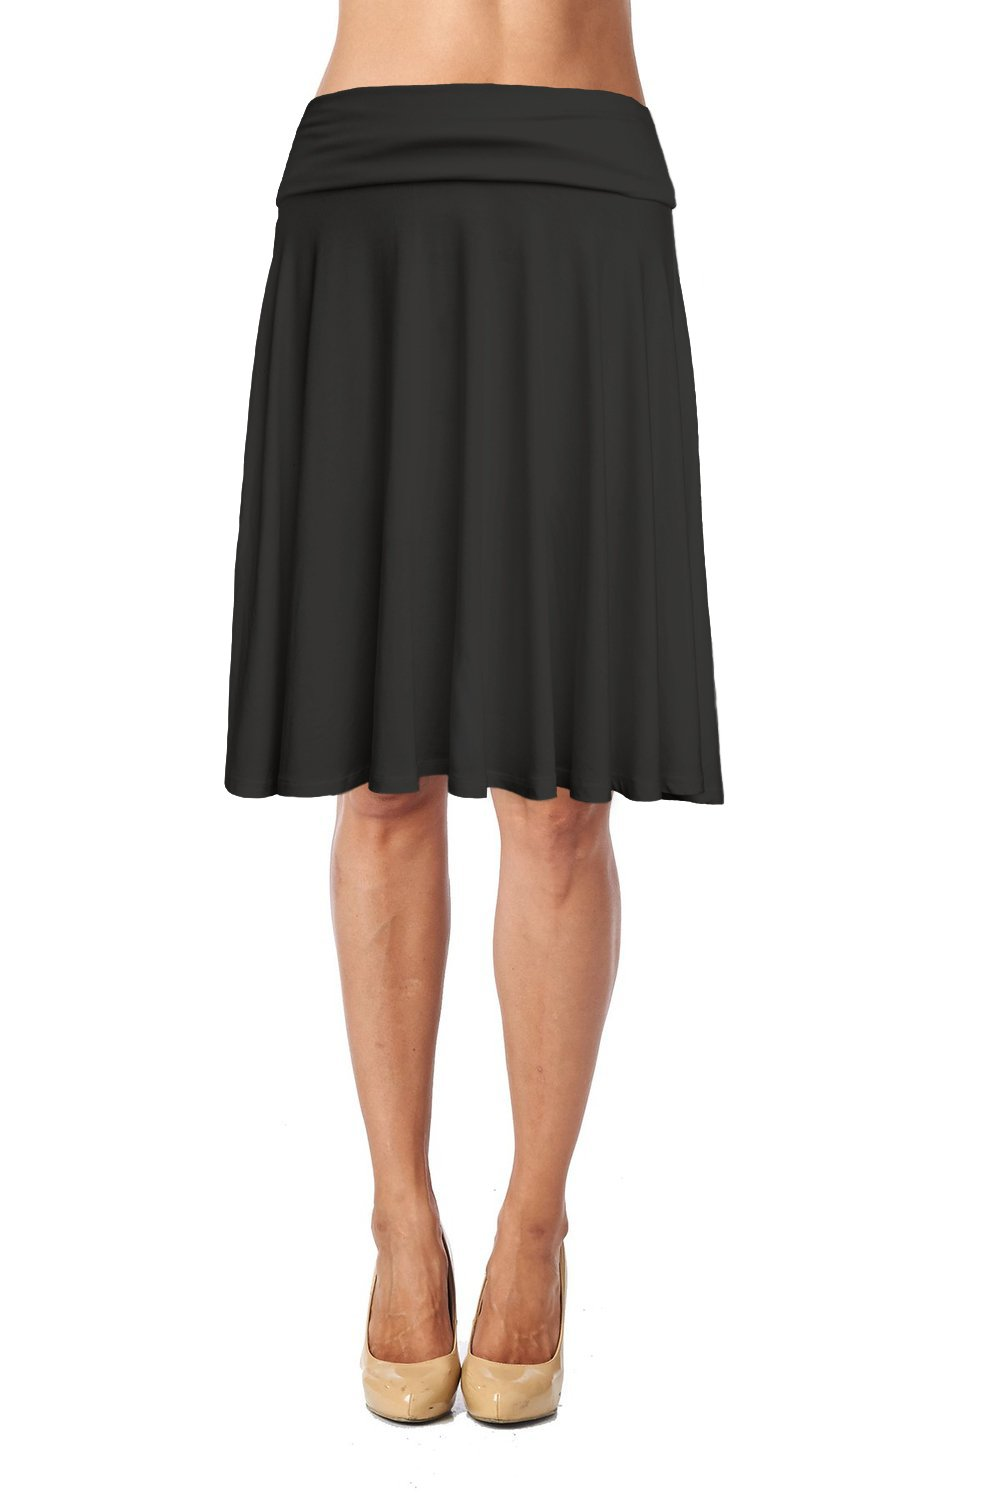 Jubilee Couture Womens Basic Soft Stretch Mid Midi Knee Length Flare Flowy Skirt Made in USA-Black,Large